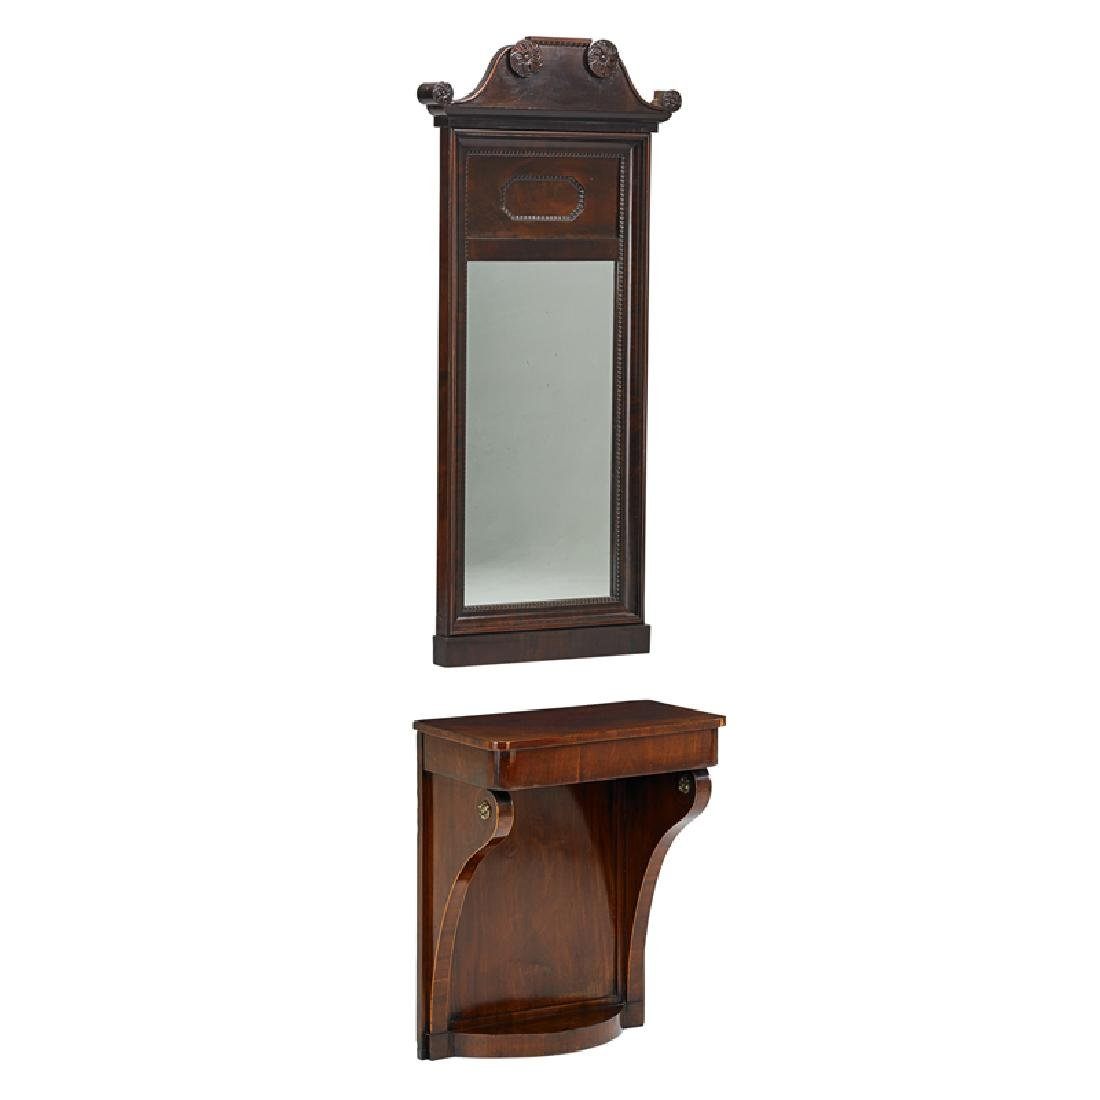 BALTIC NEOCLASSICAL MAHOGANY CONSOLE WITH MIRROR